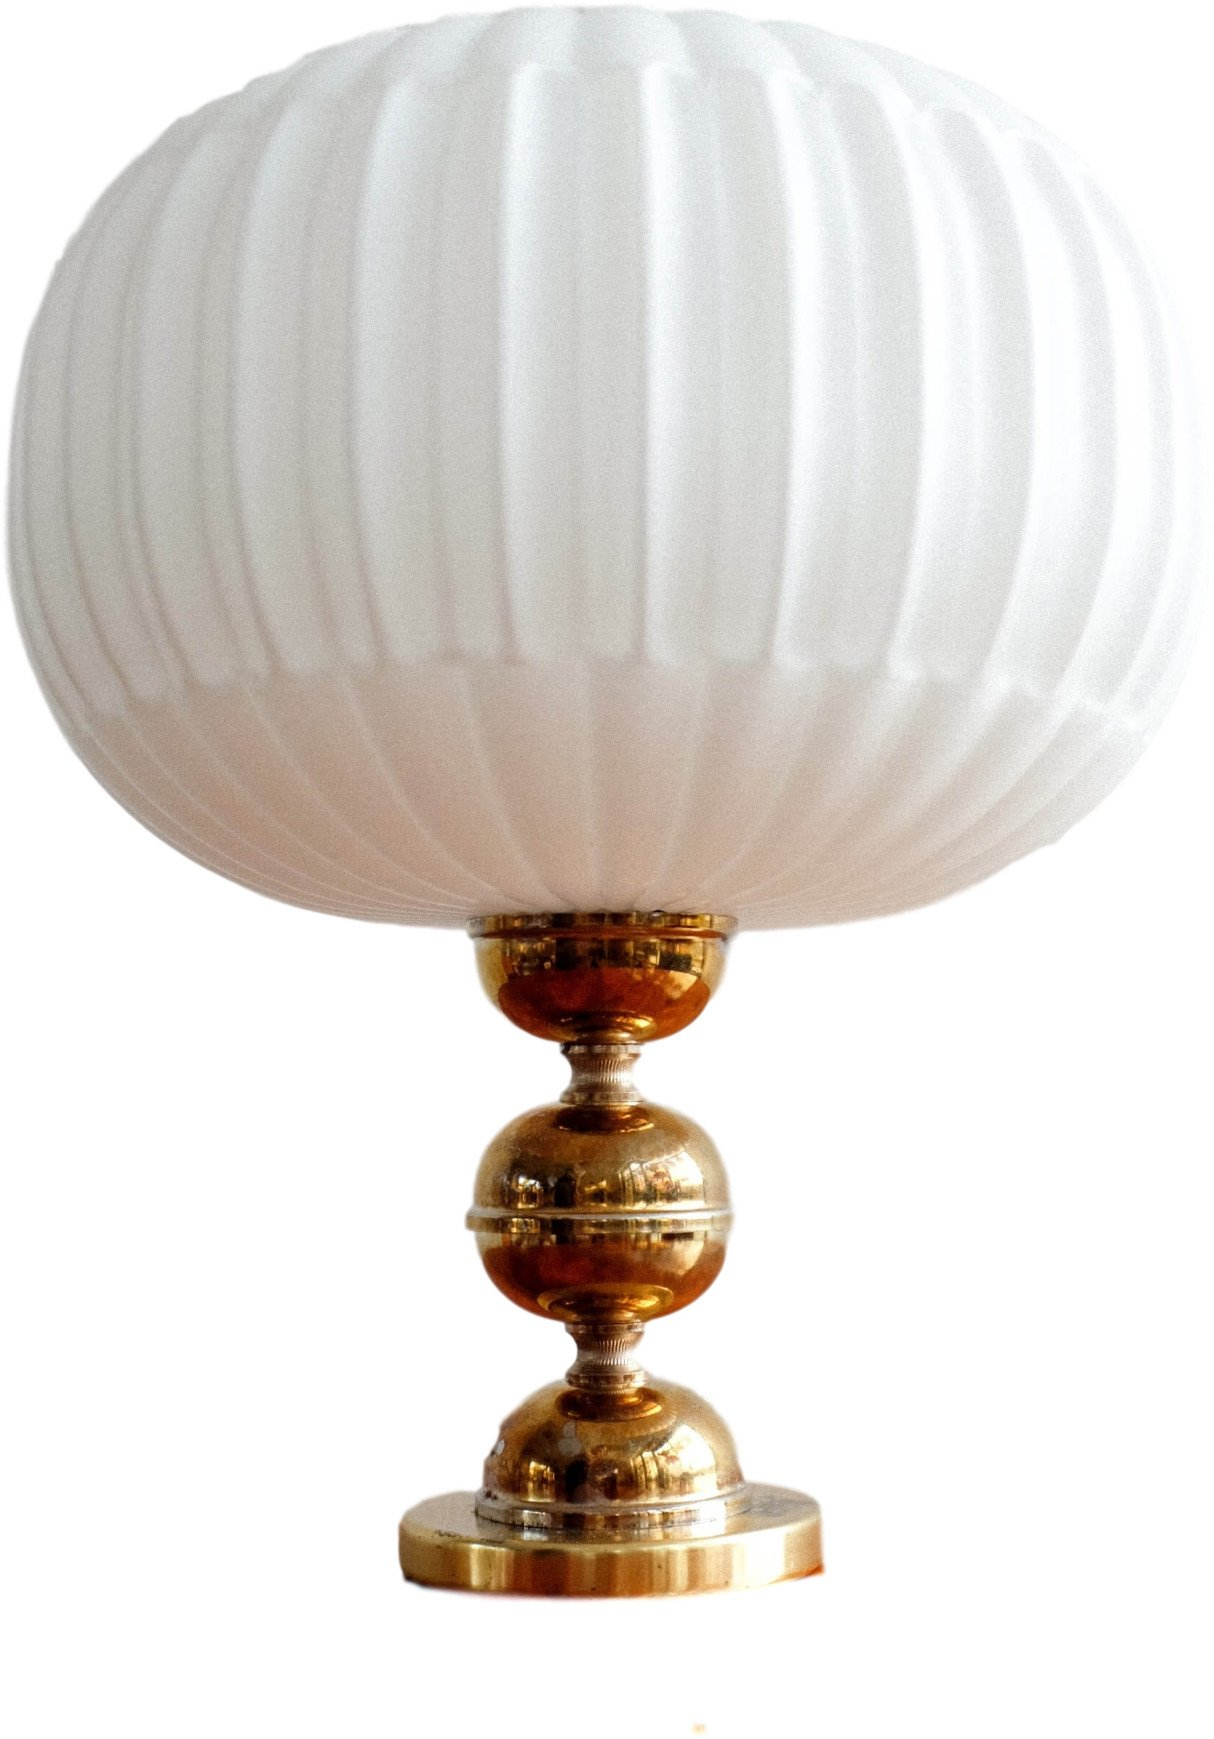 Table Lamp, Czechoslovakia, 1960s